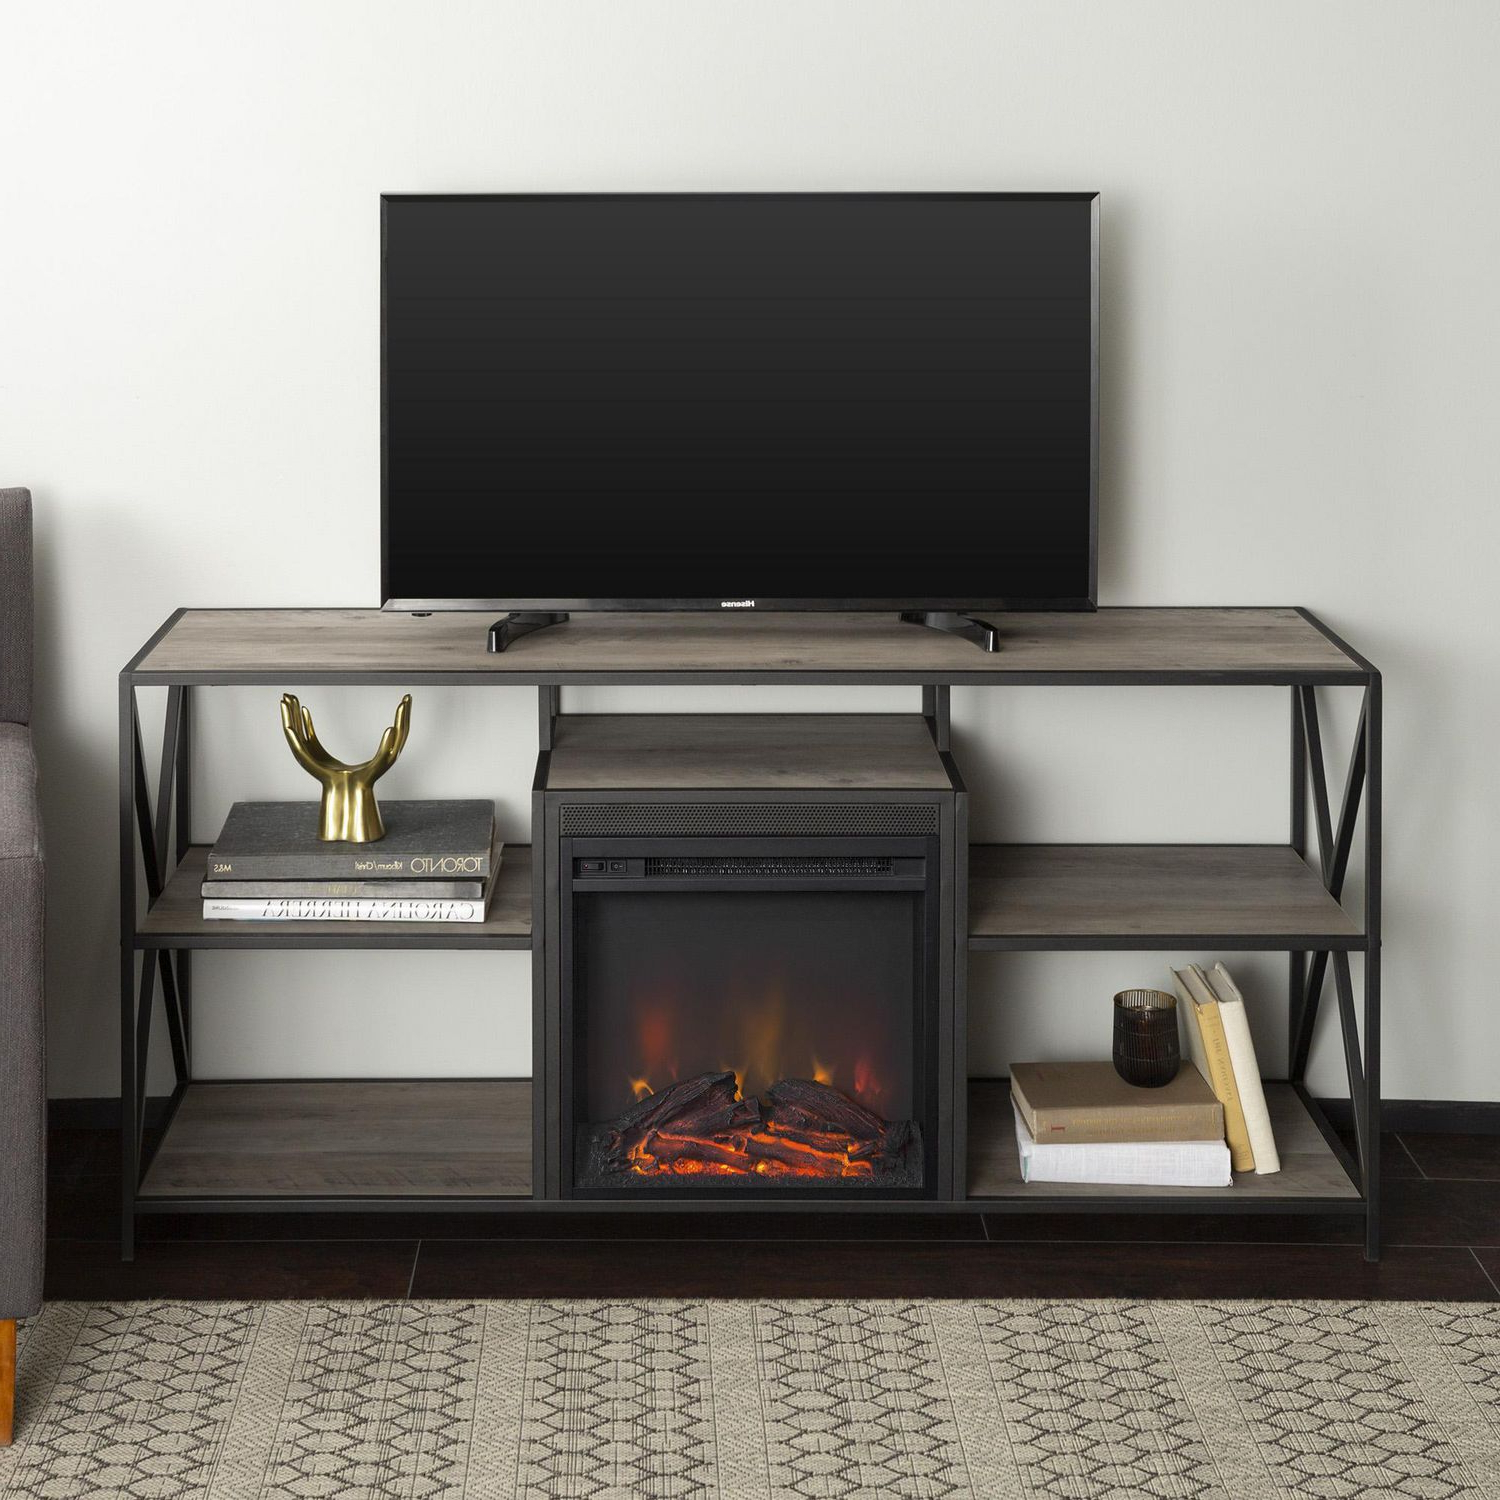 Manor Park Modern Industrial Fireplace Tv Stand For Tv's Throughout Tv Stands With Led Lights In Multiple Finishes (View 3 of 20)